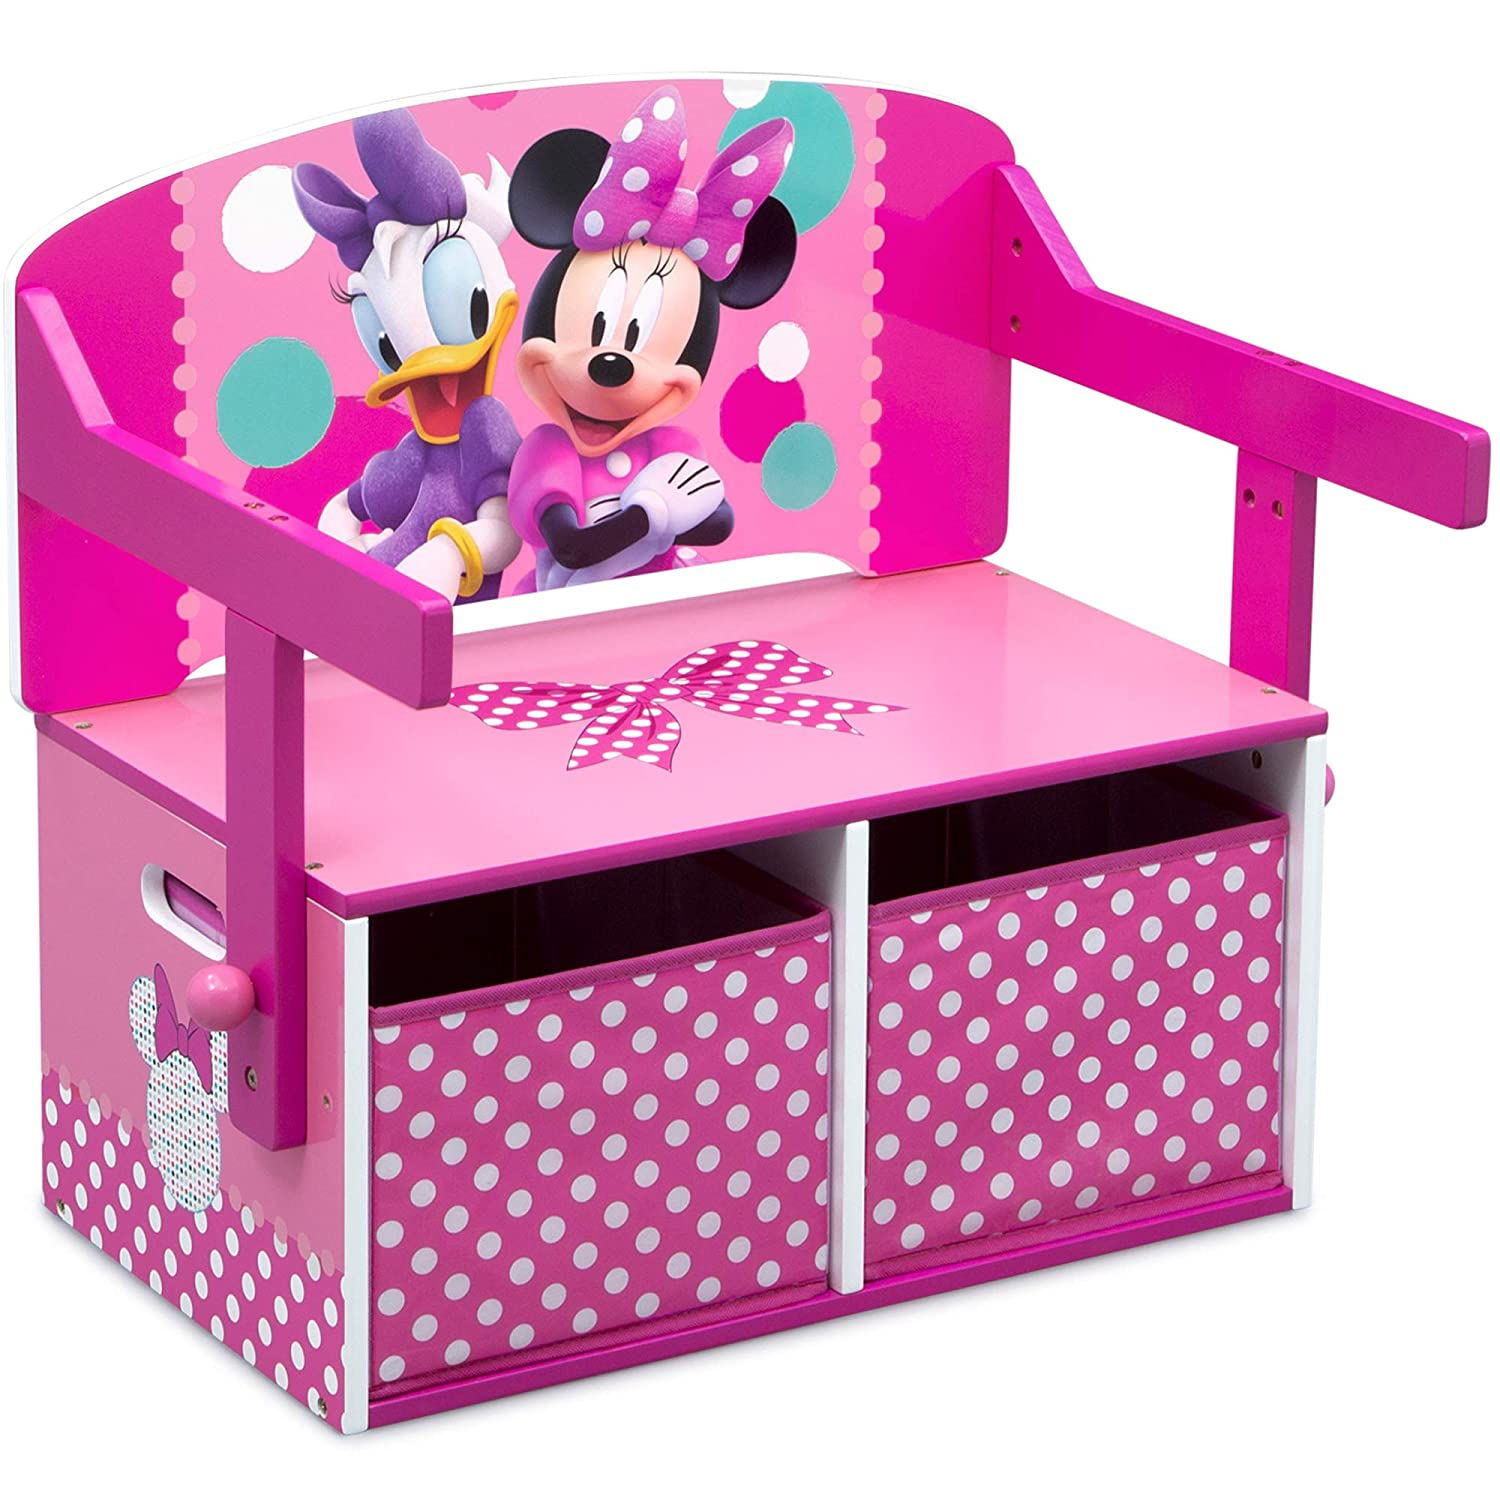 Astonishing Kids Teens Home Items Minnie Mouse Kids Tv Chair Desk Pdpeps Interior Chair Design Pdpepsorg